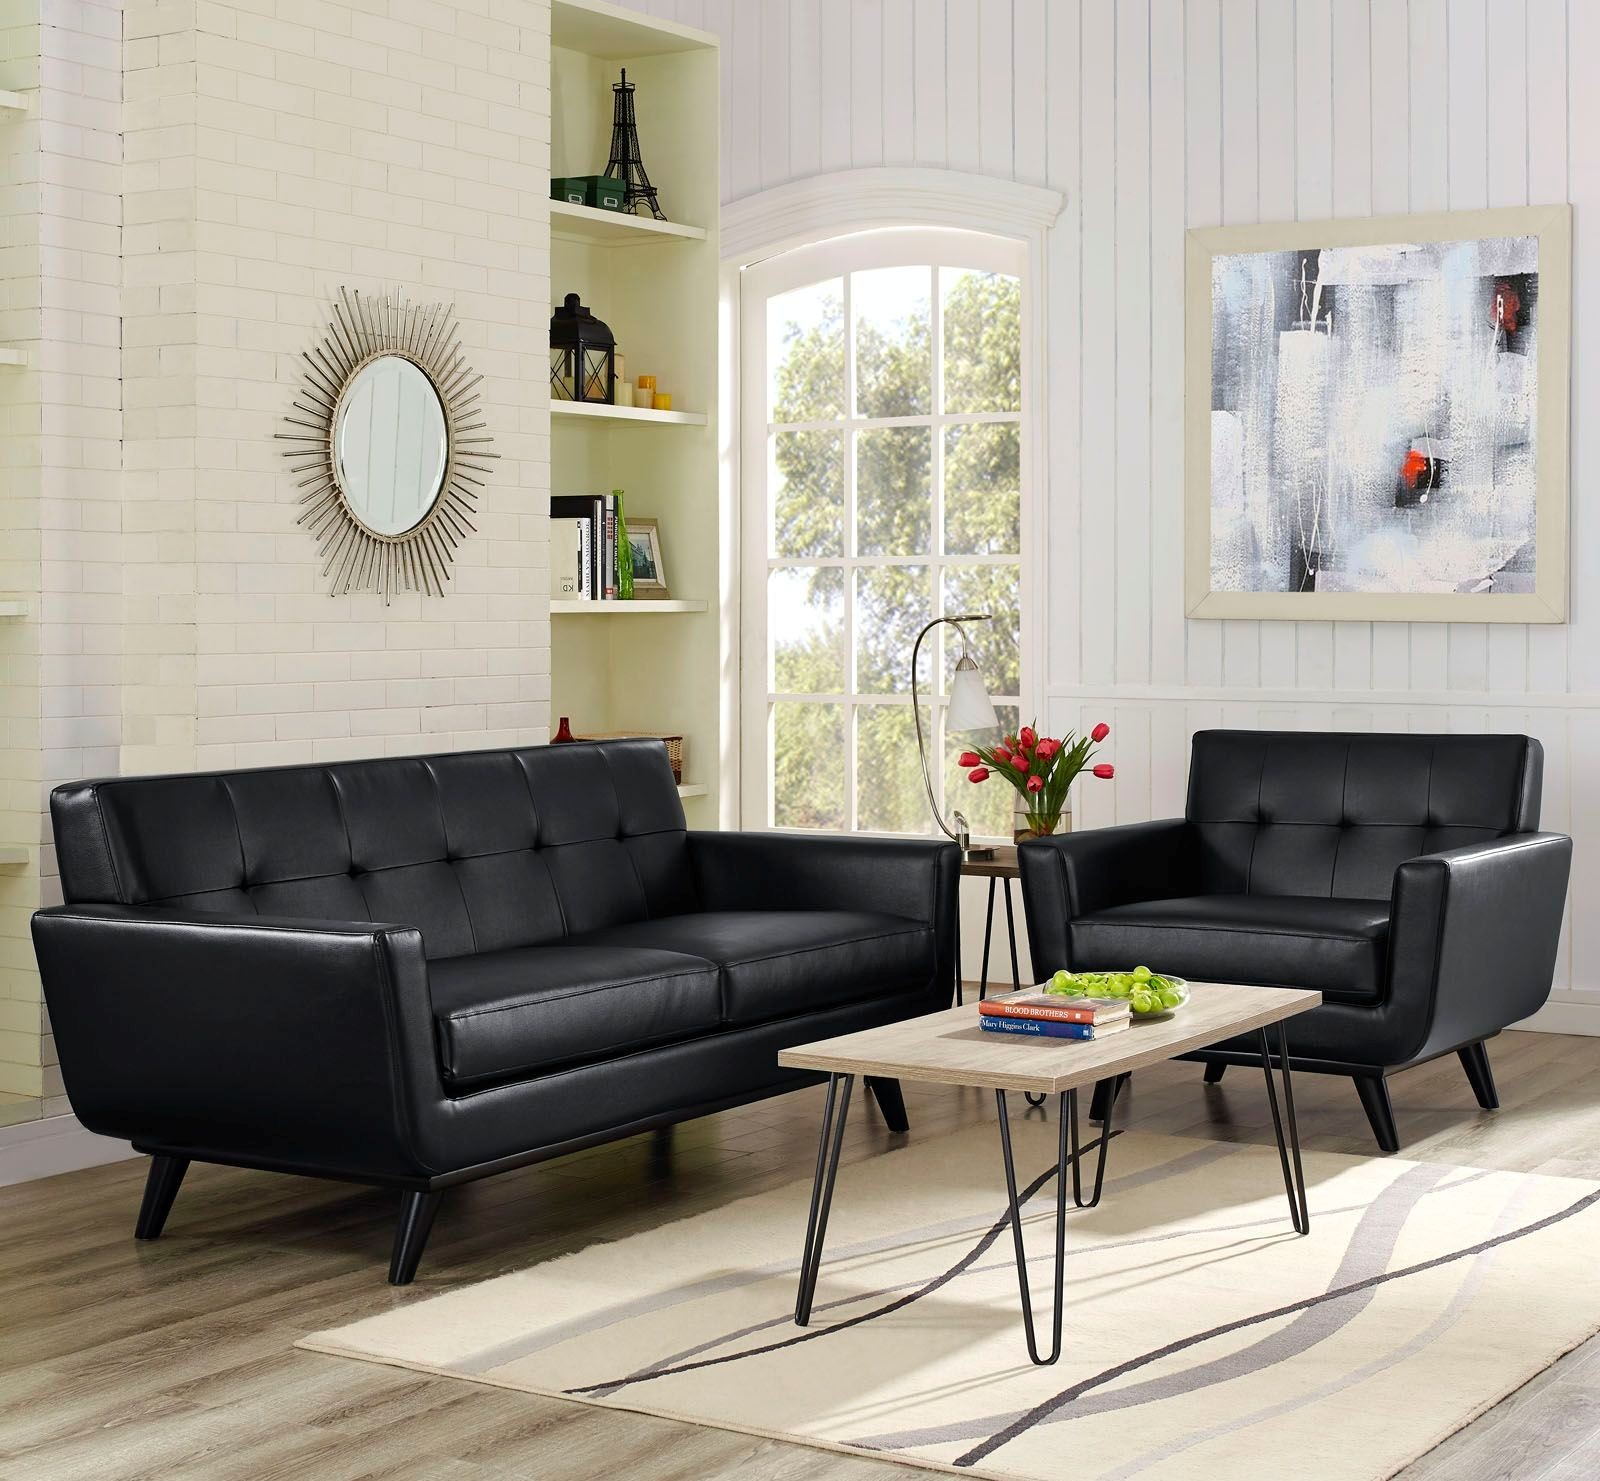 Engage black 2 piece leather living room set eei 1765 blk for 8 piece living room furniture